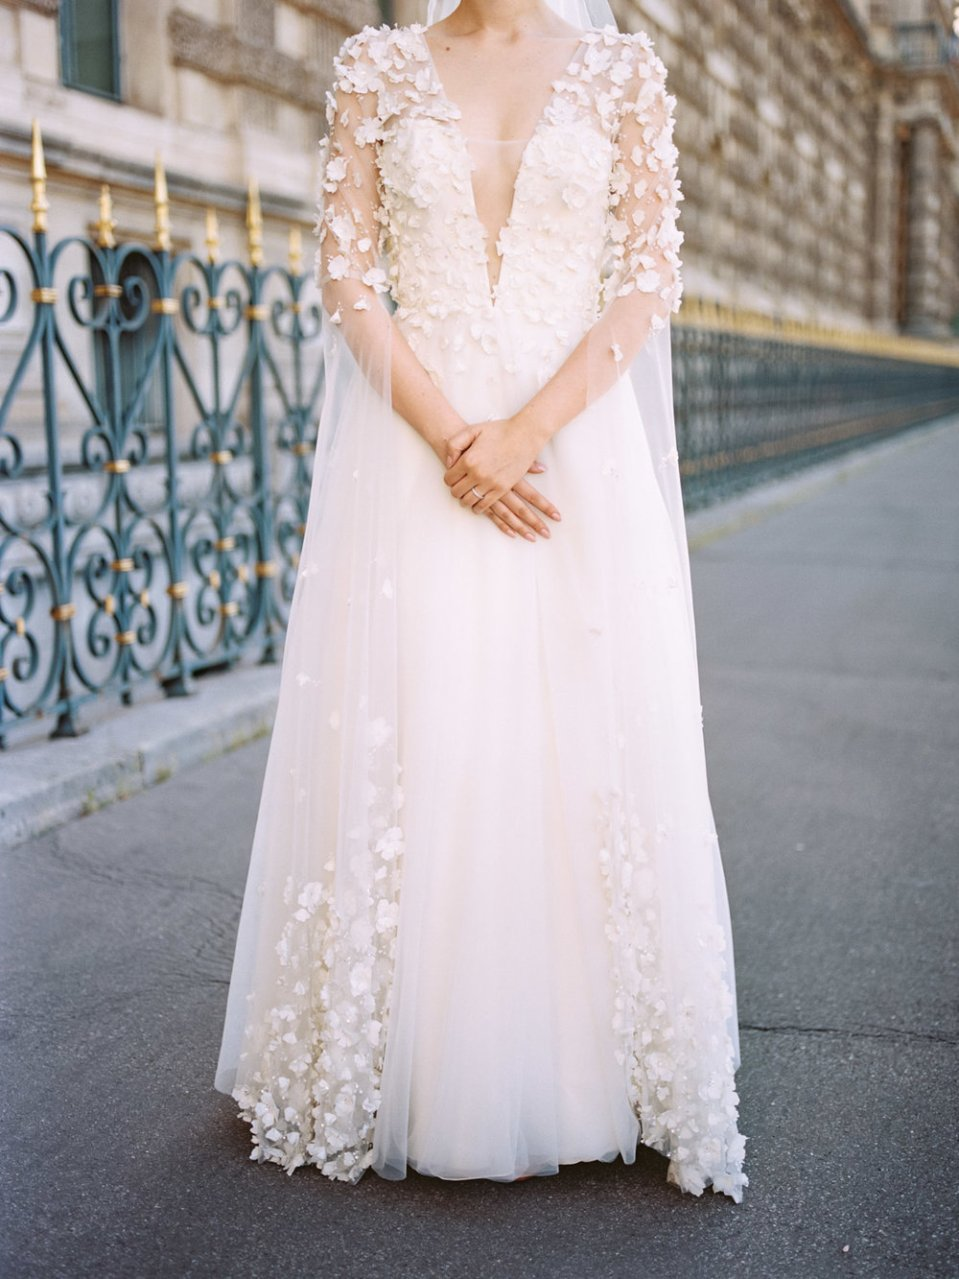 Destination Fine Art Wedding Editorial Photography in Paris with Max Chaoul -22.jpg